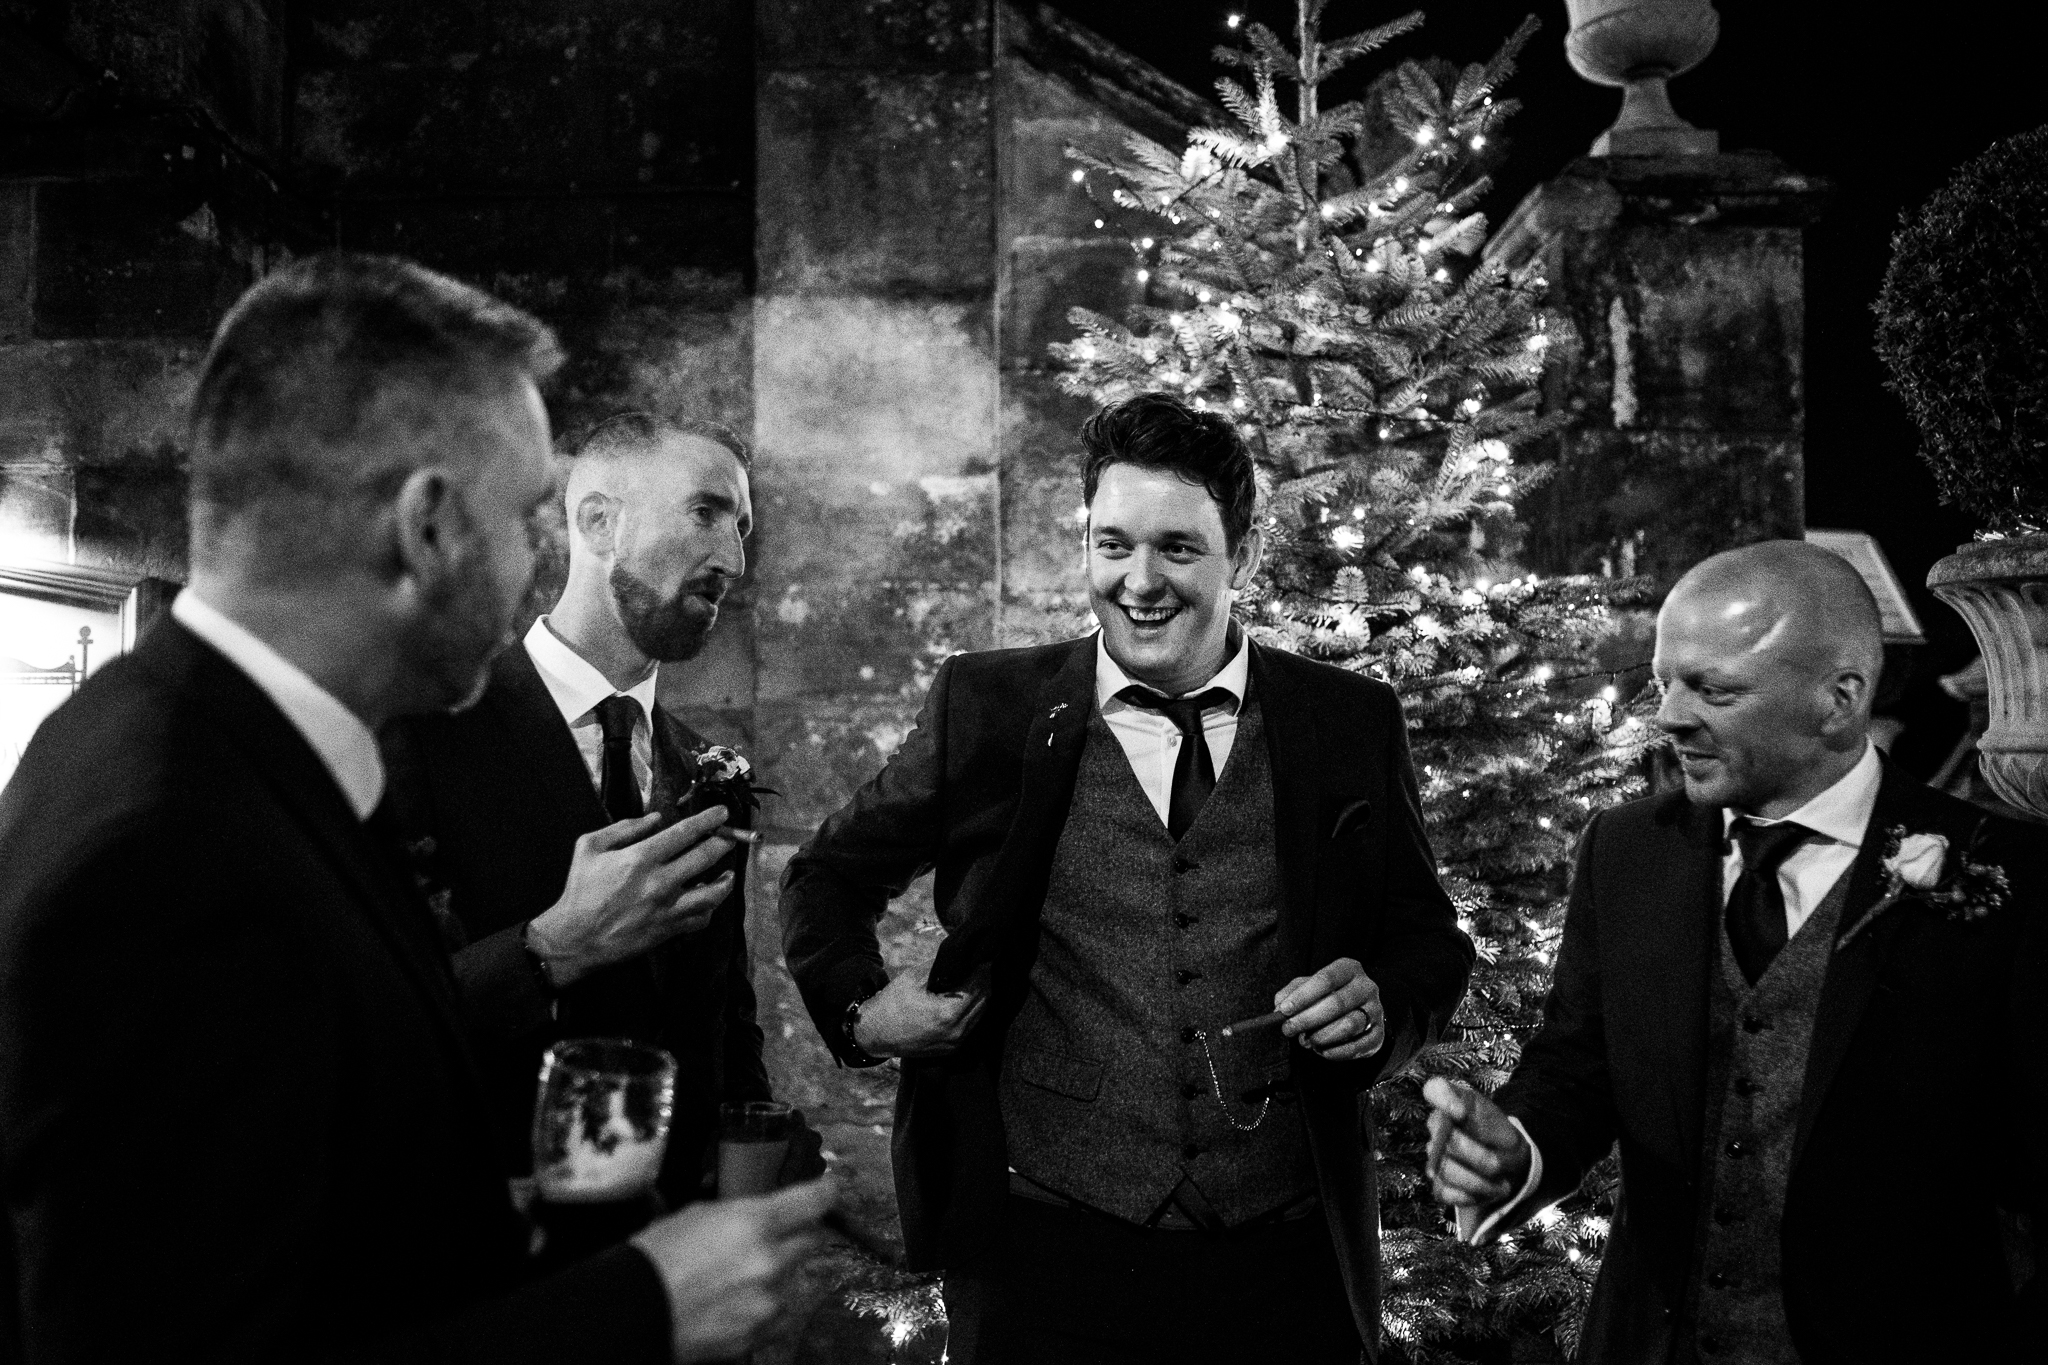 Winter Wedding Christmas Wedding Photography Stafford, Staffordshire Saint Chad Weston Hall Documentary Photographer - Jenny Harper-52.jpg